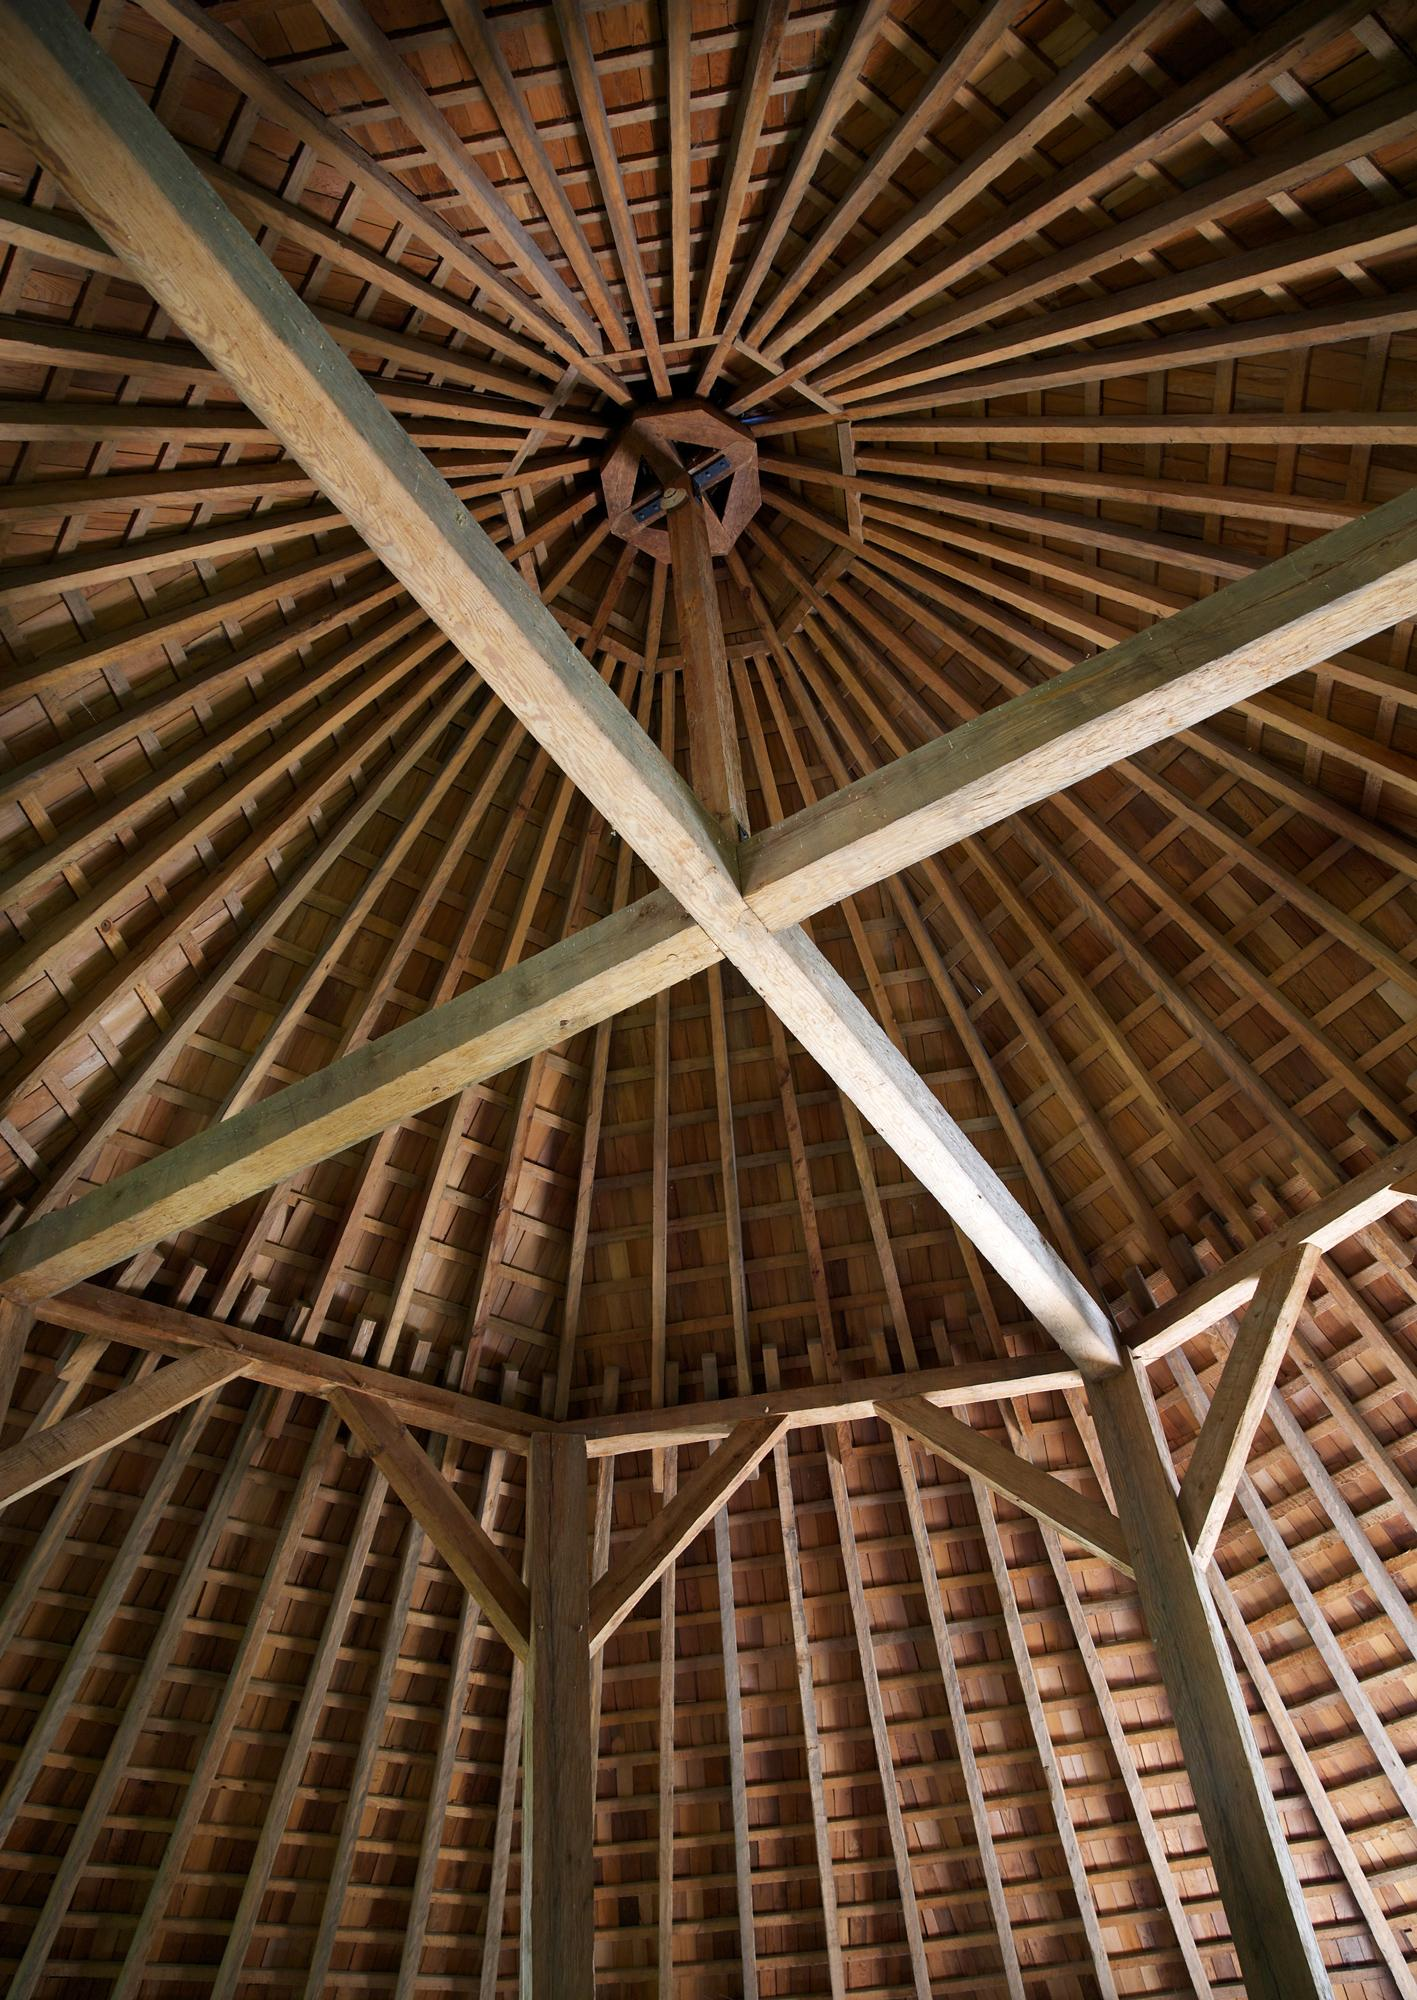 Interior of the 16-sided barn showing the roof's framing. - MVLA